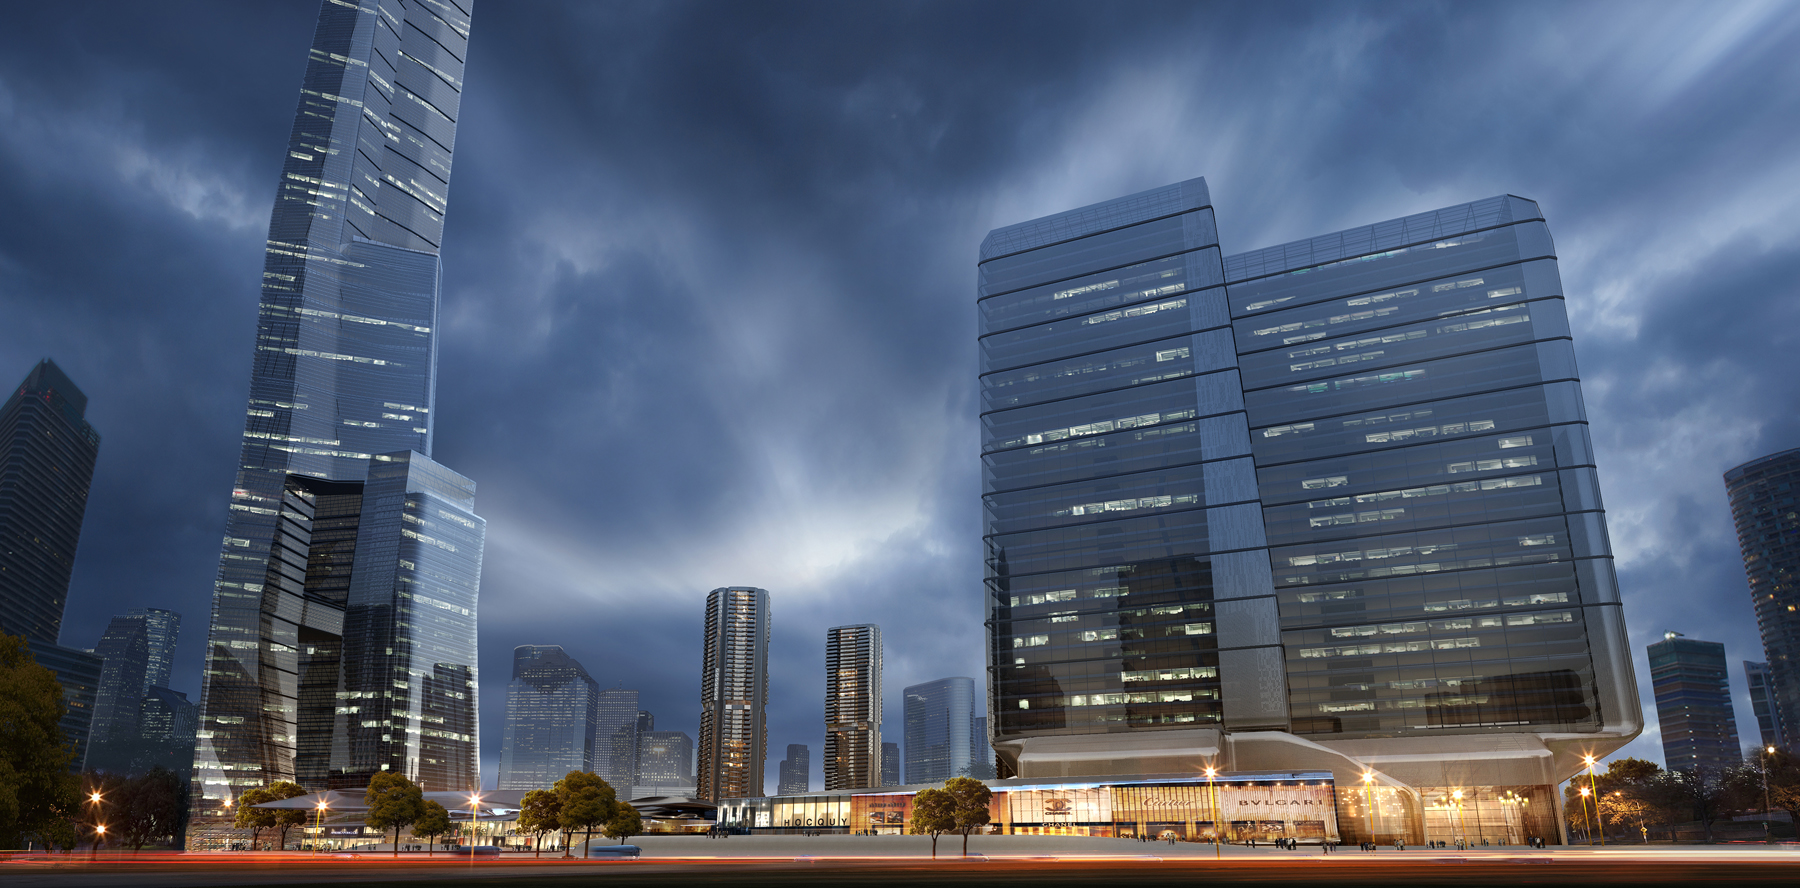 New Iconic Towers for Houston, Texas Set to Promote Urban ...